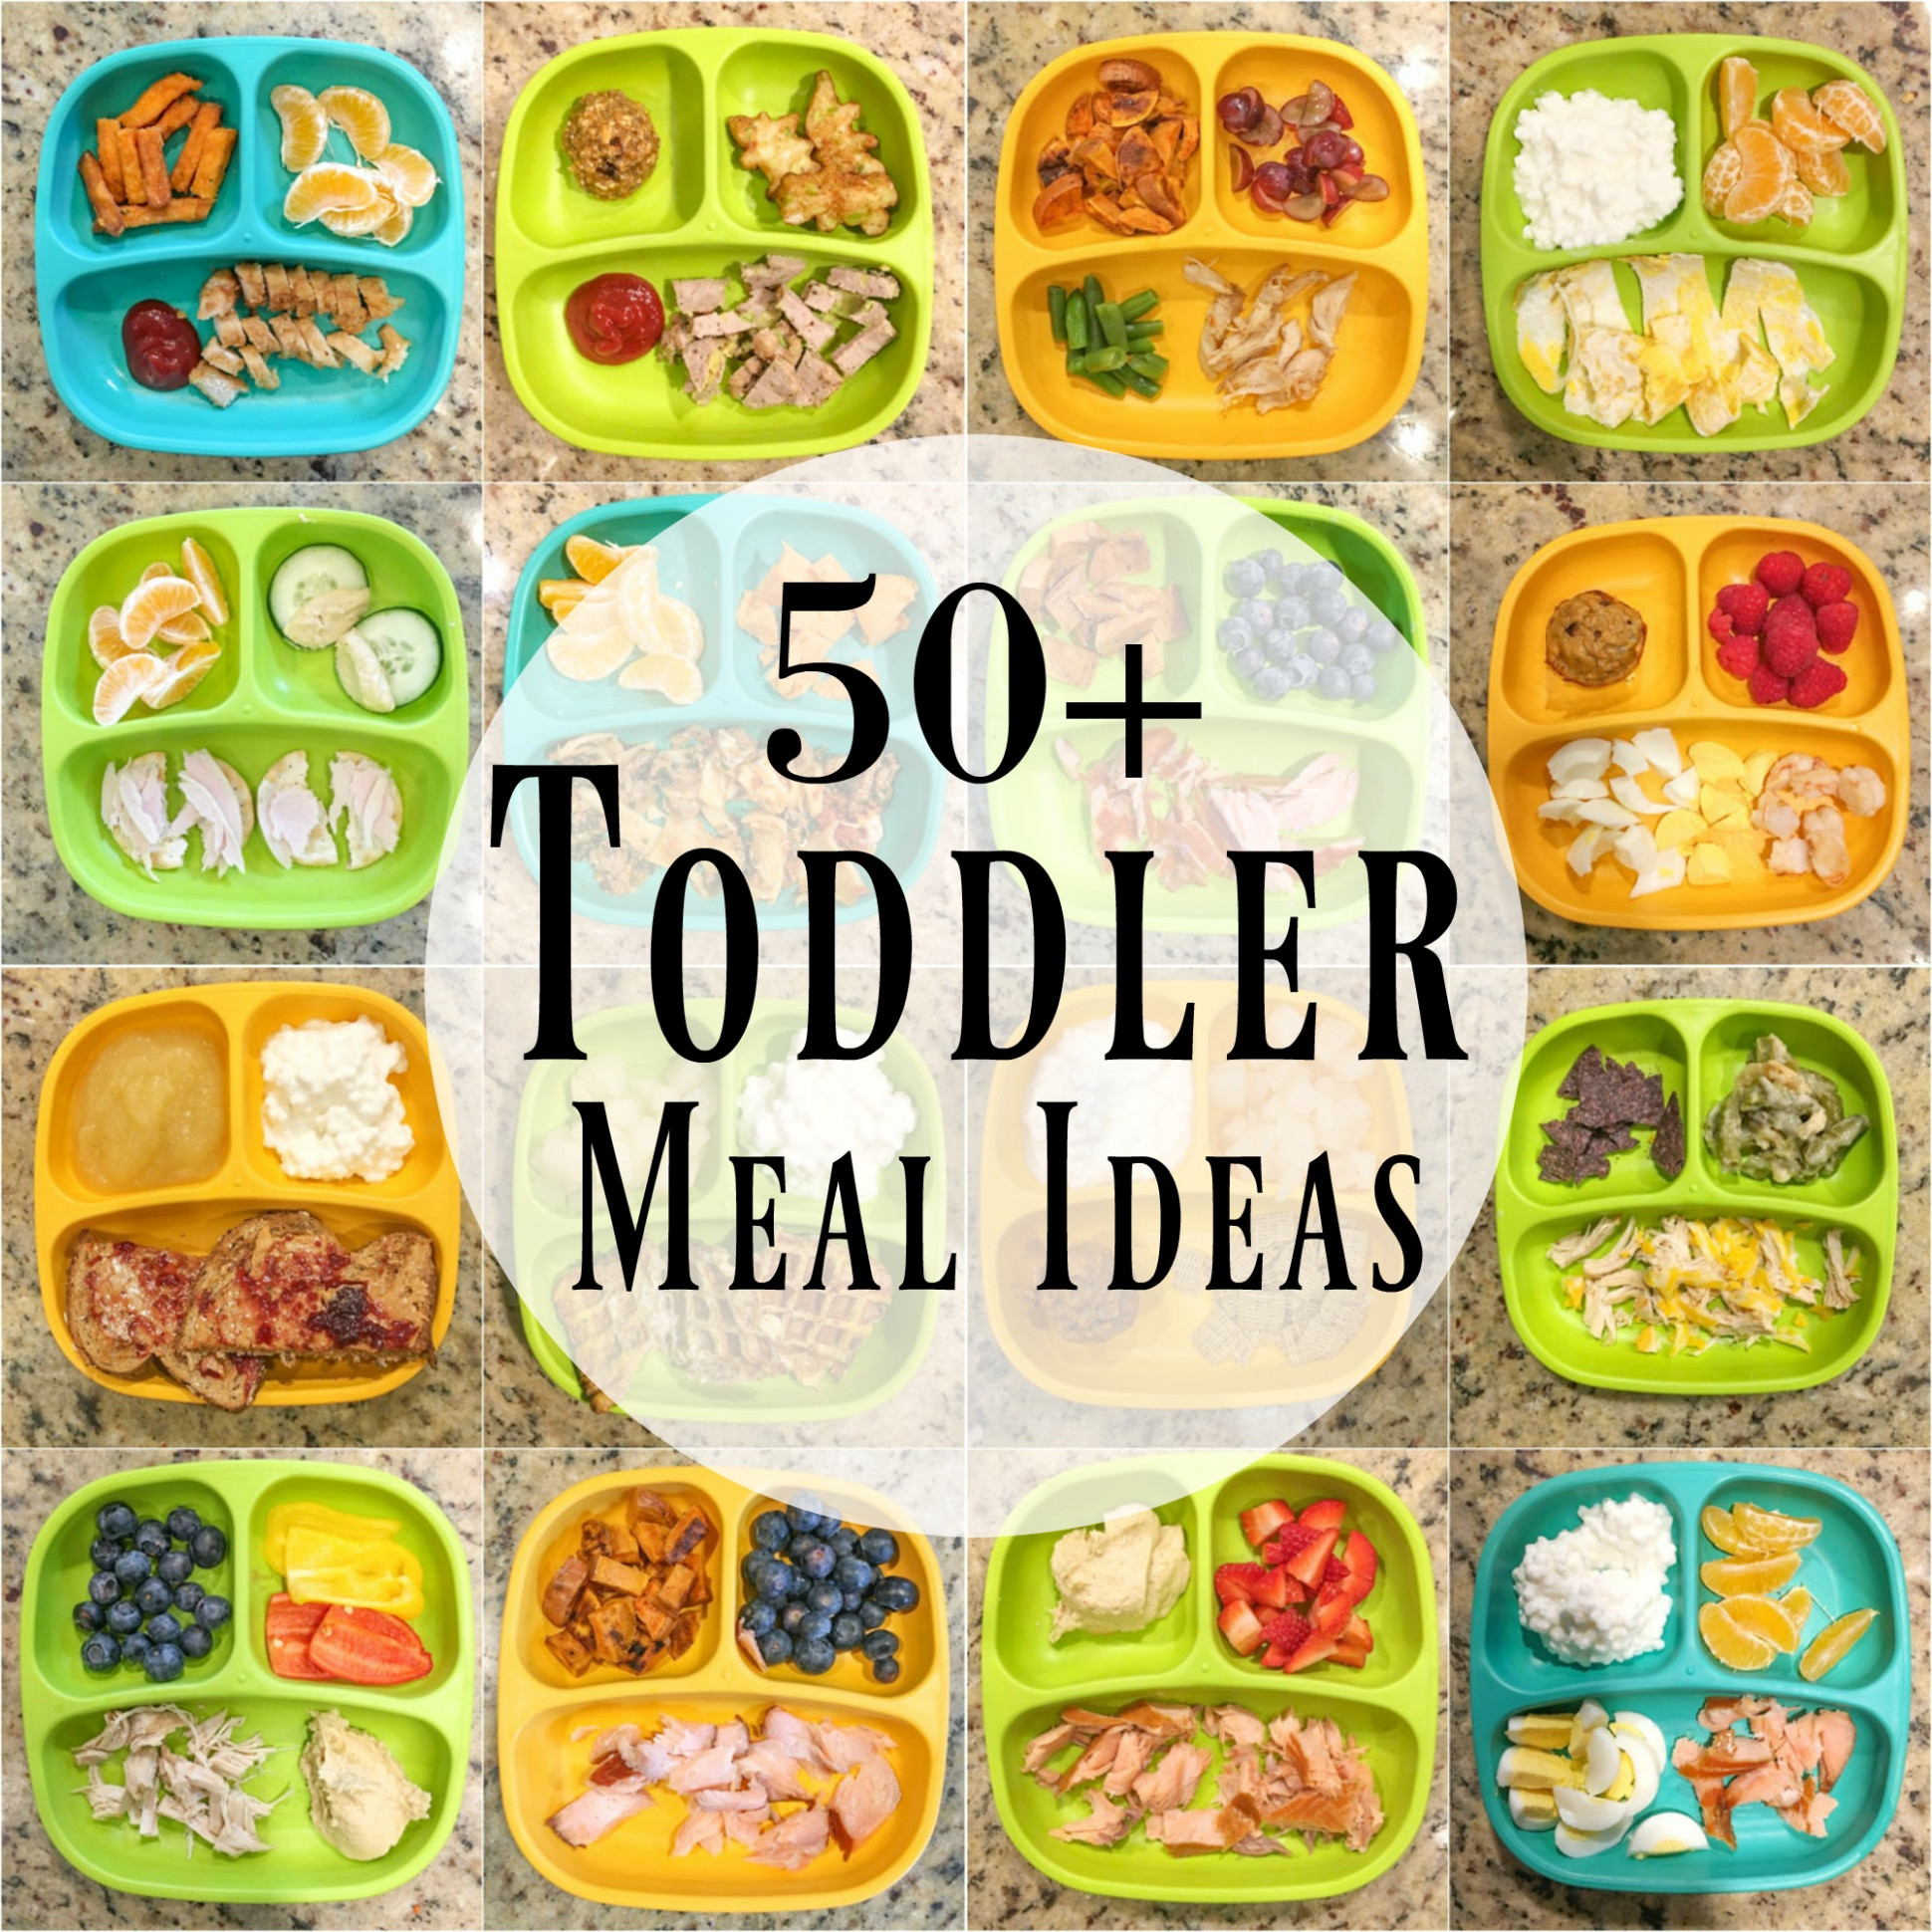 12 Healthy Toddler Meal Ideas | The Lean Green Bean - recipes for lunch healthy